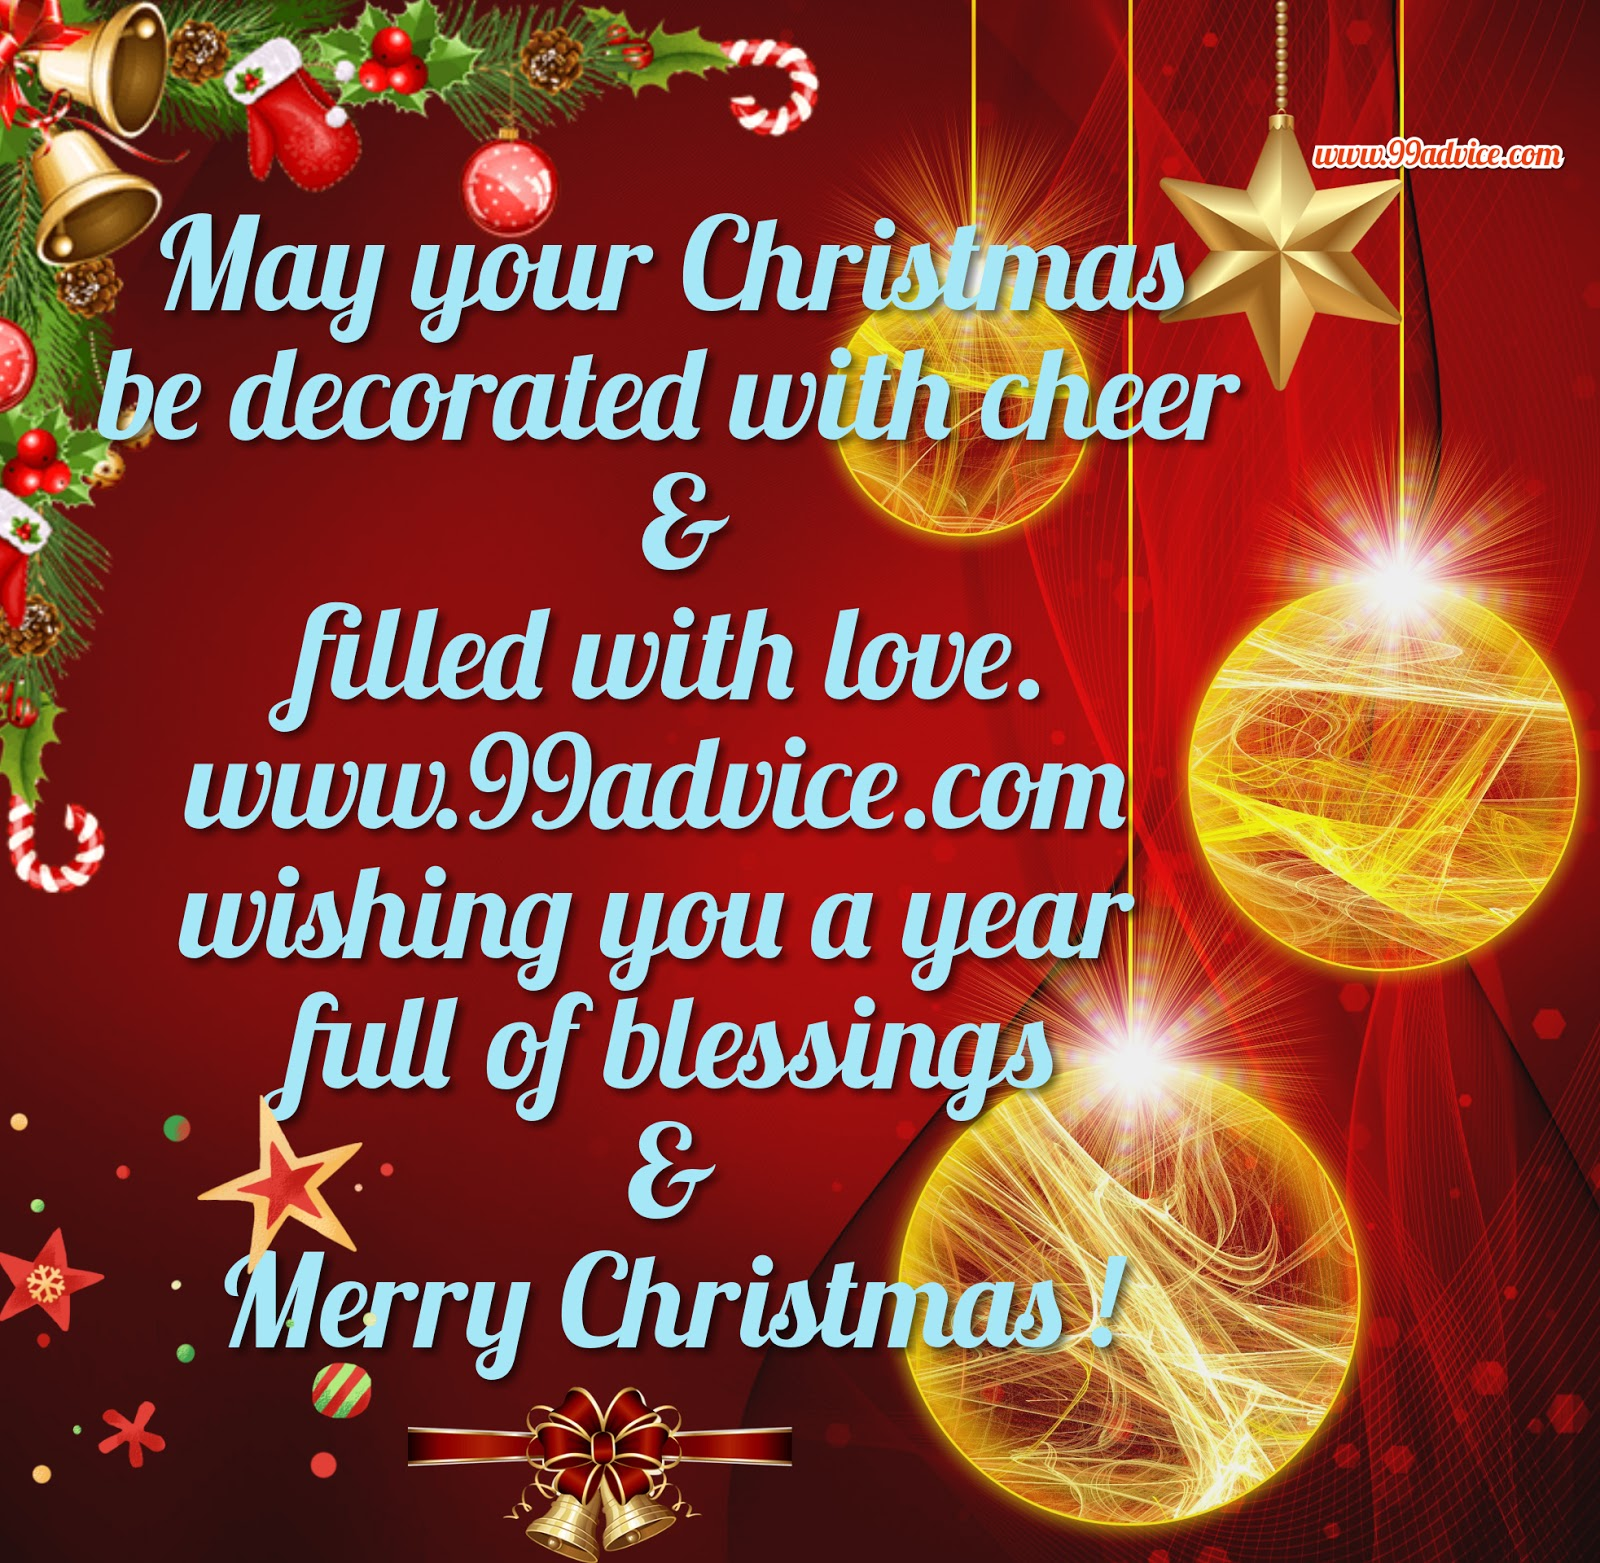 Merry Christmas Images Free Download.Merry Christmas Images Free Download 99advice